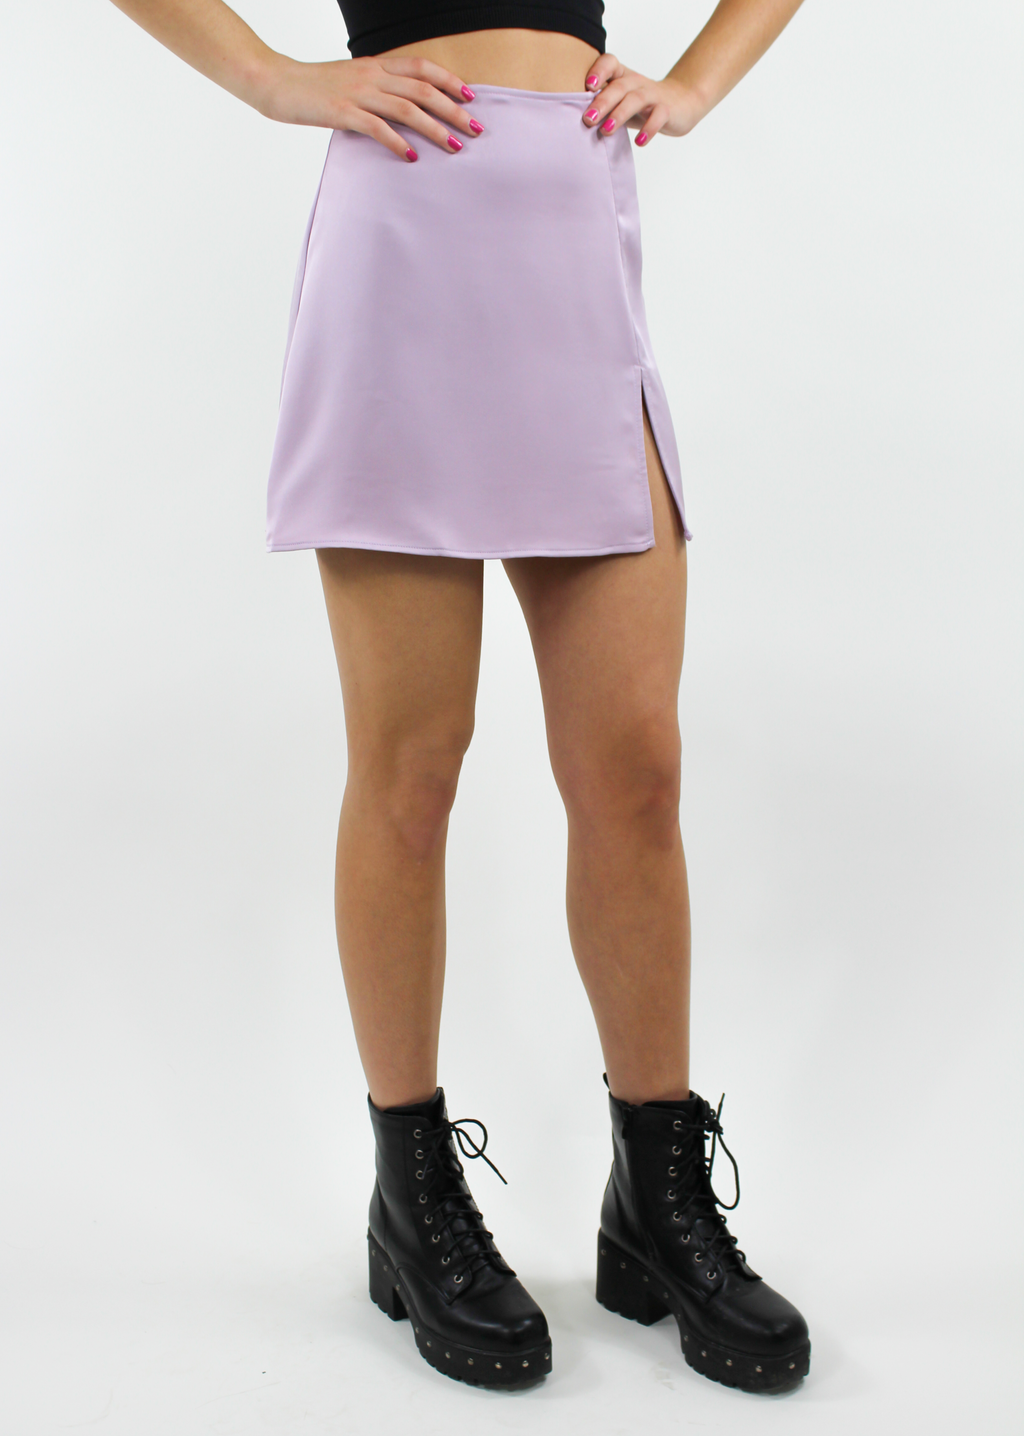 Say Less Skirt ★ Lilac